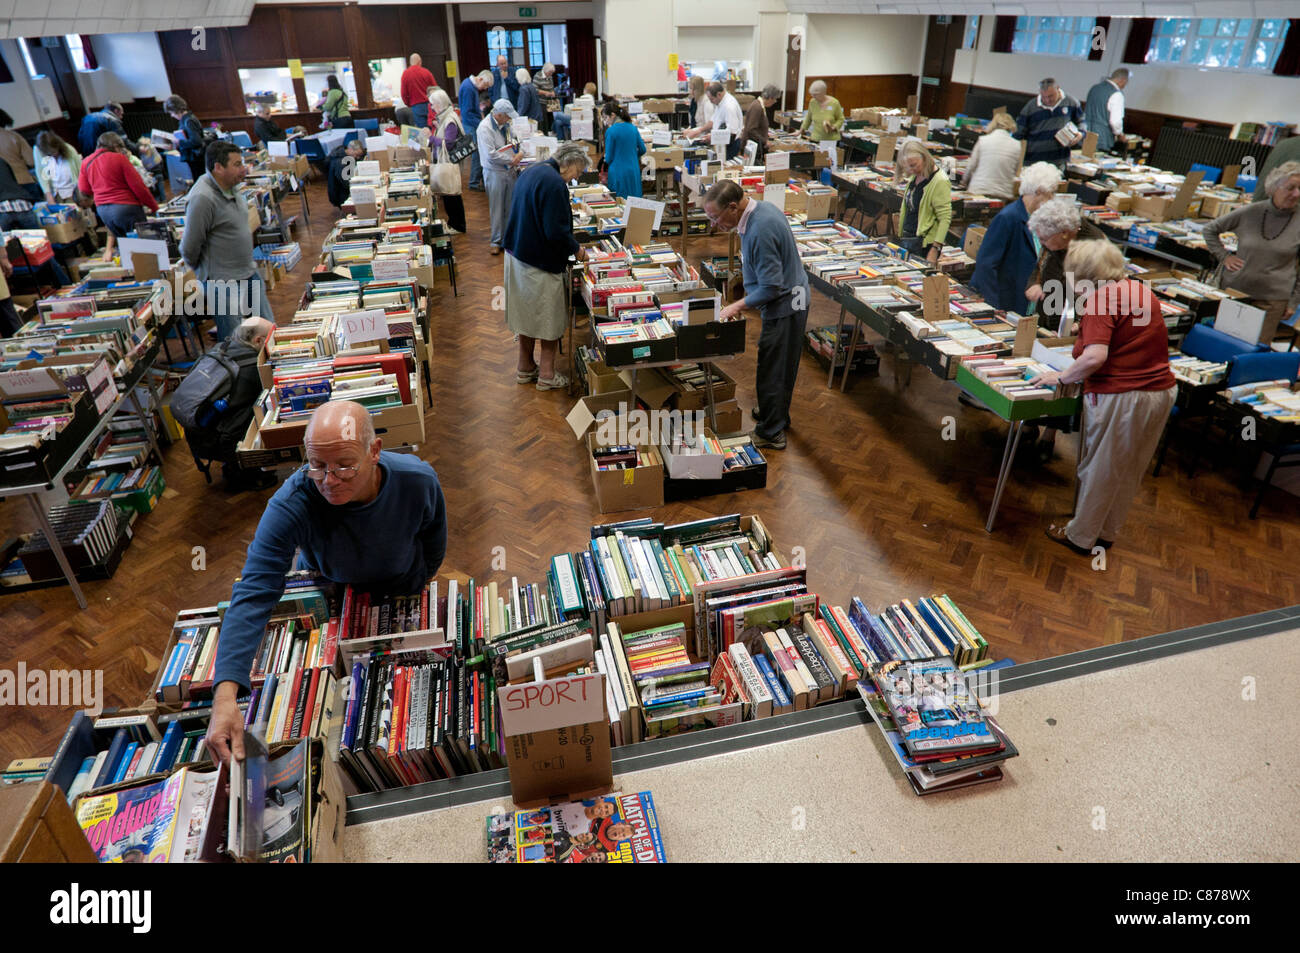 Charity book fair in a village hall in Surrey, UK - Stock Image